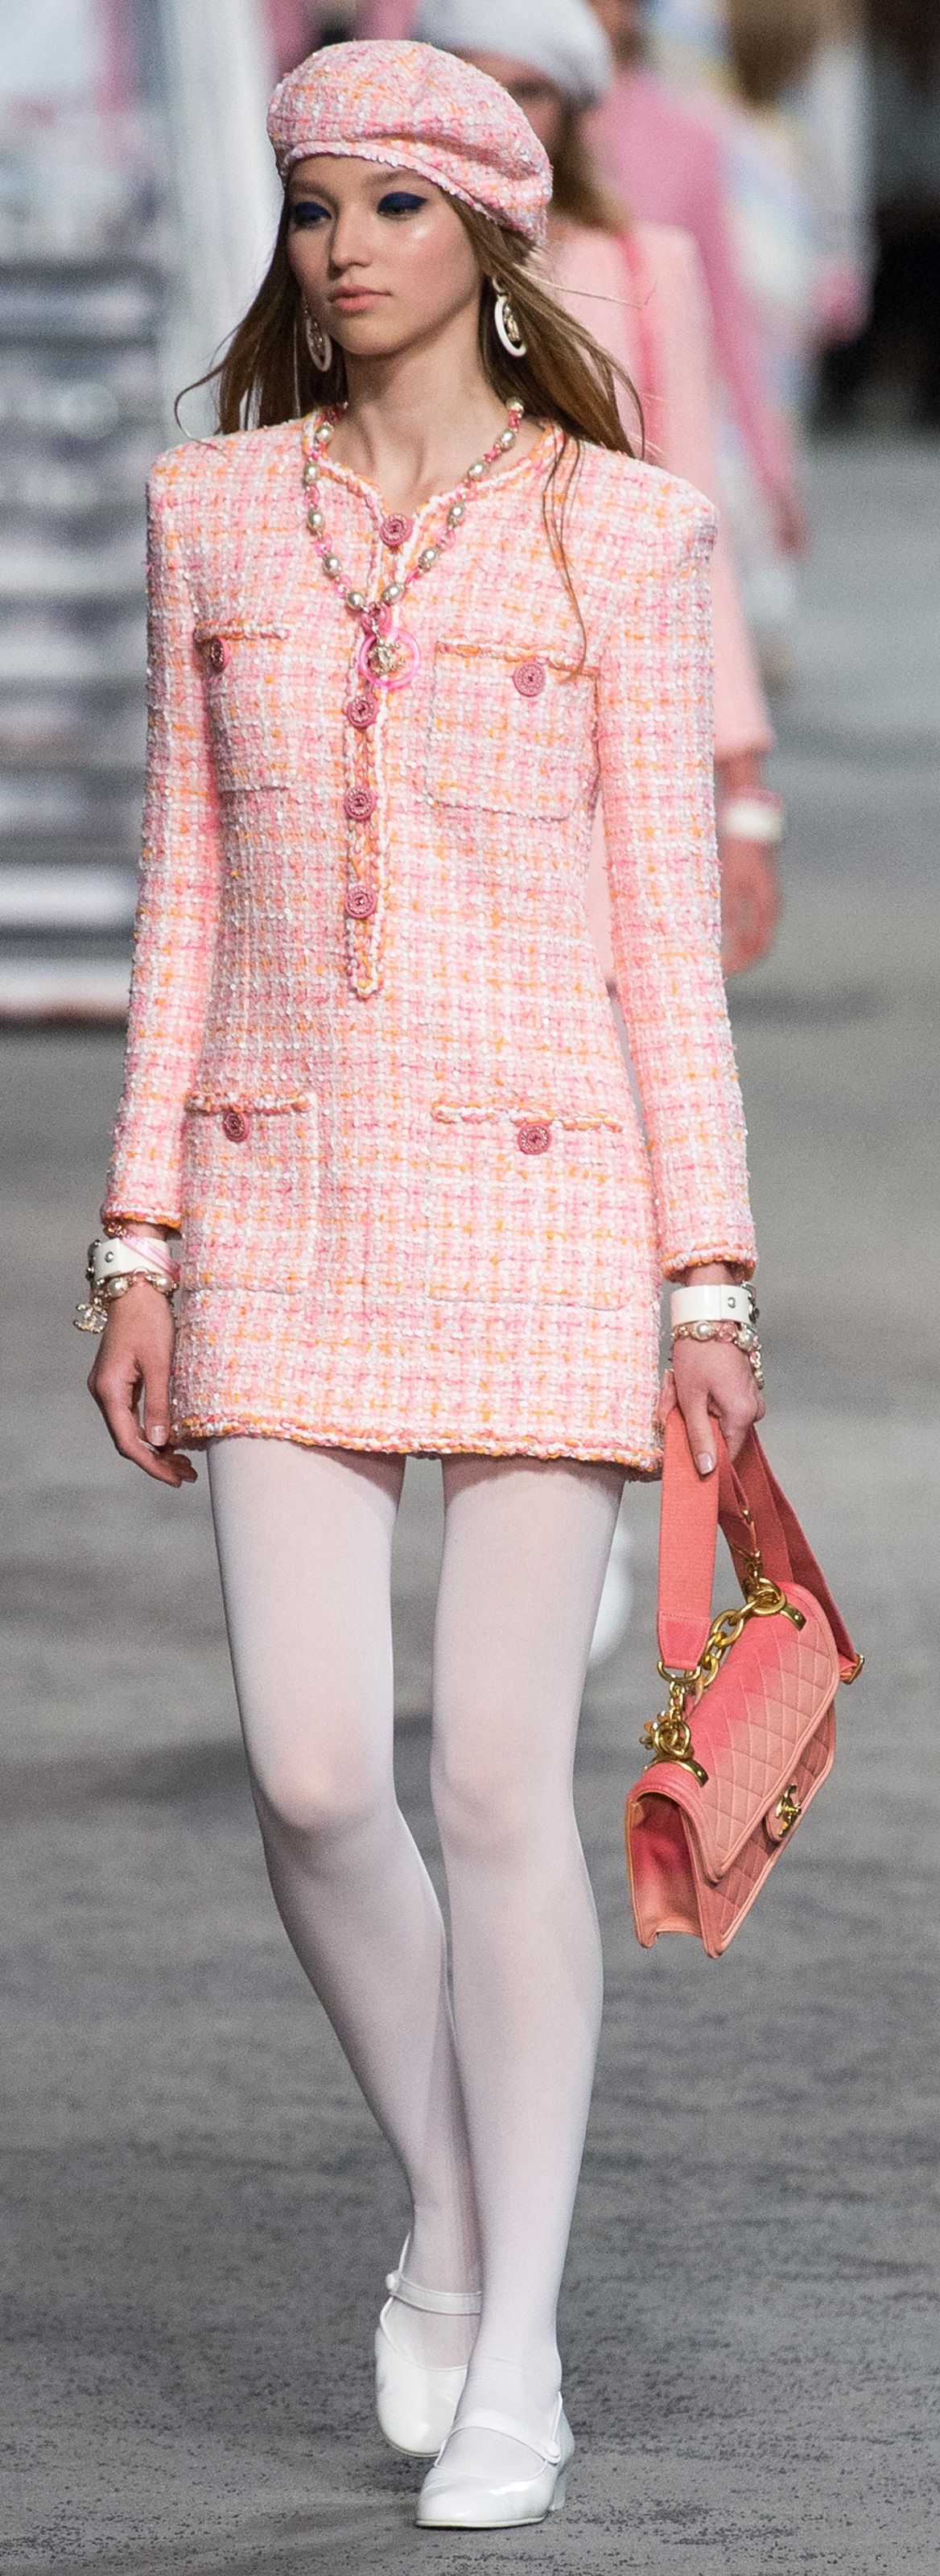 Chanel Resort 2019